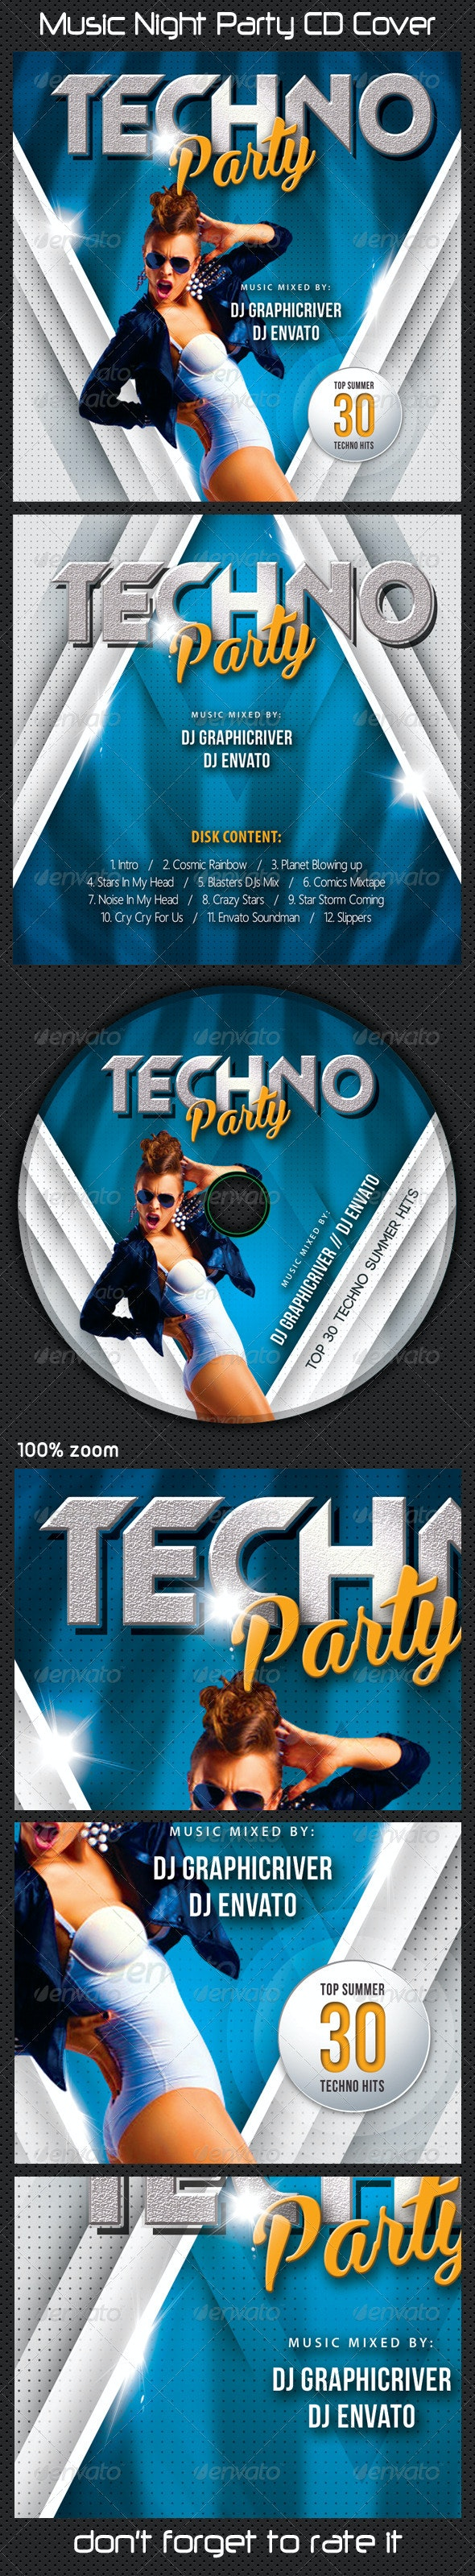 Music Night Party CD Cover 09 - CD & DVD Artwork Print Templates